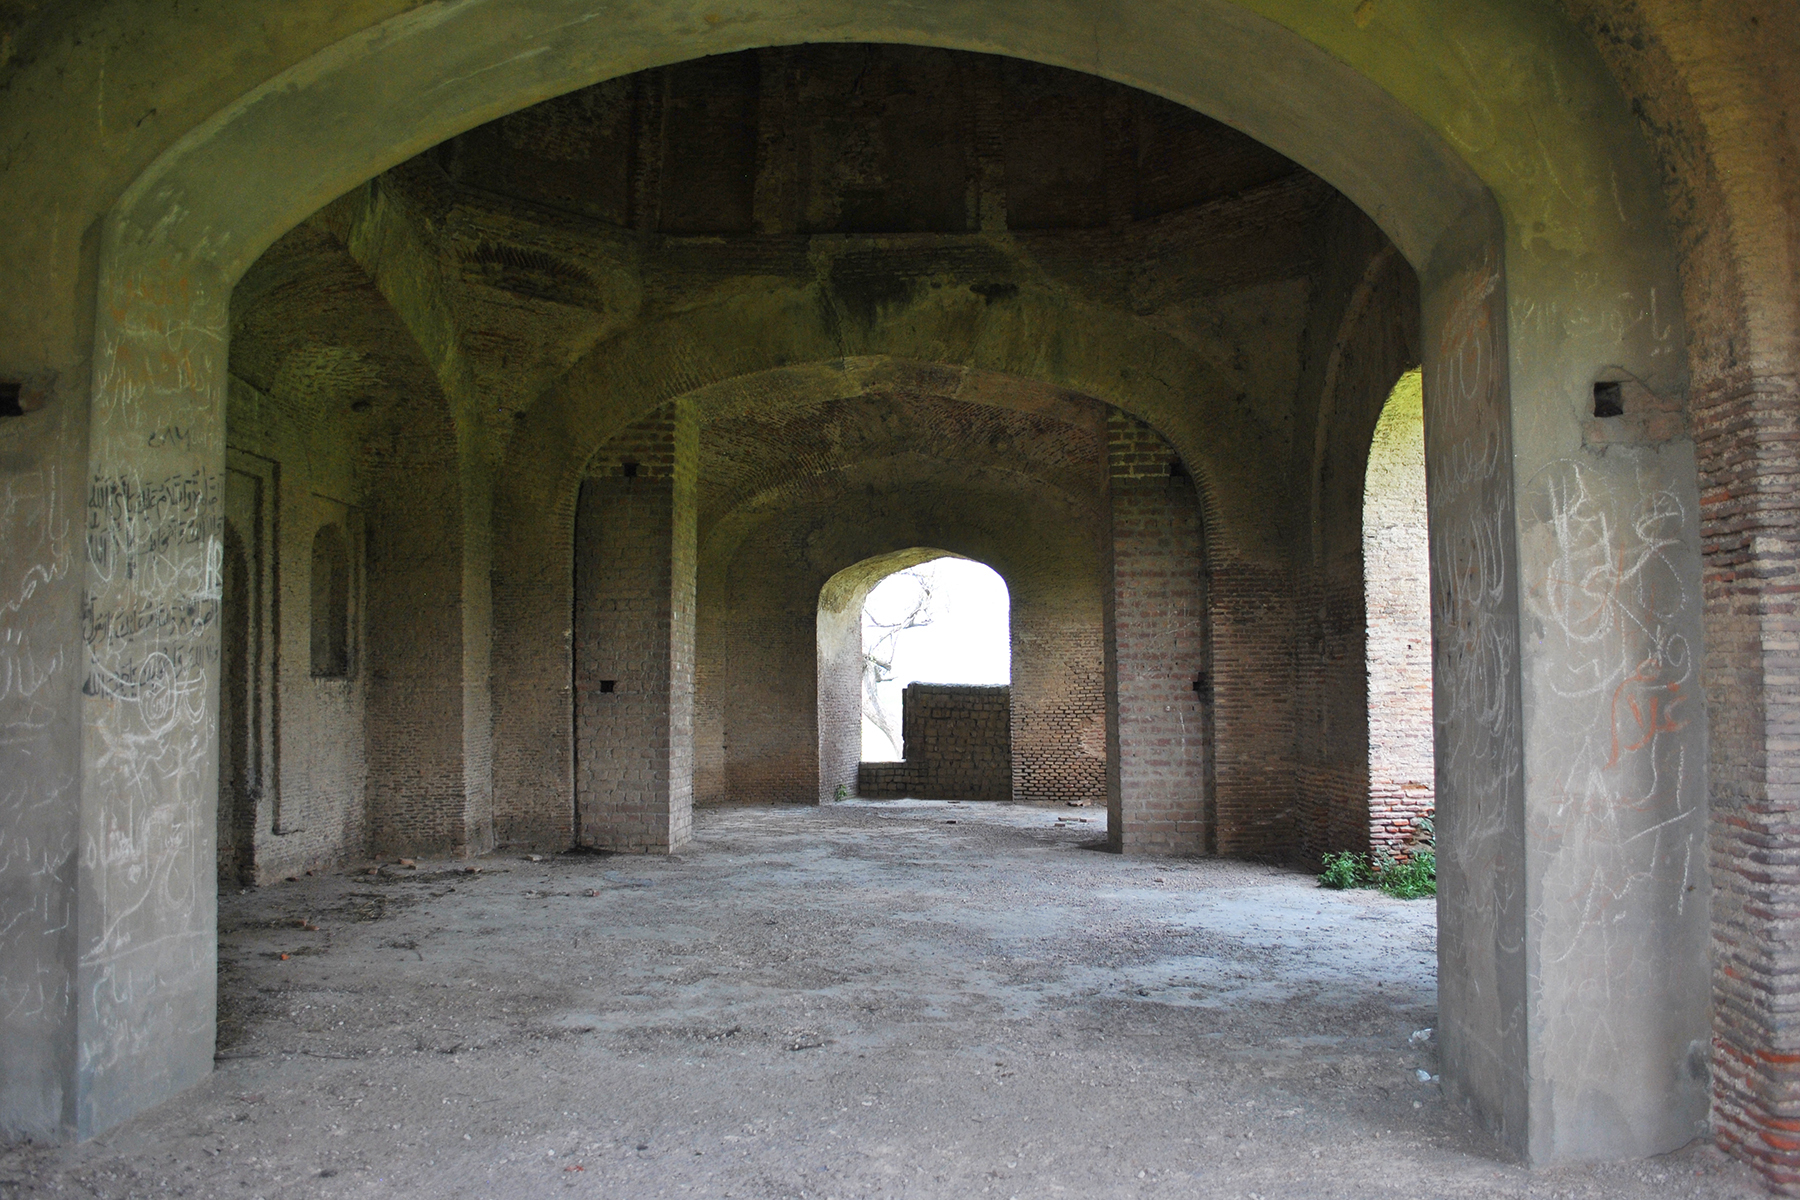 Another view of the interior.